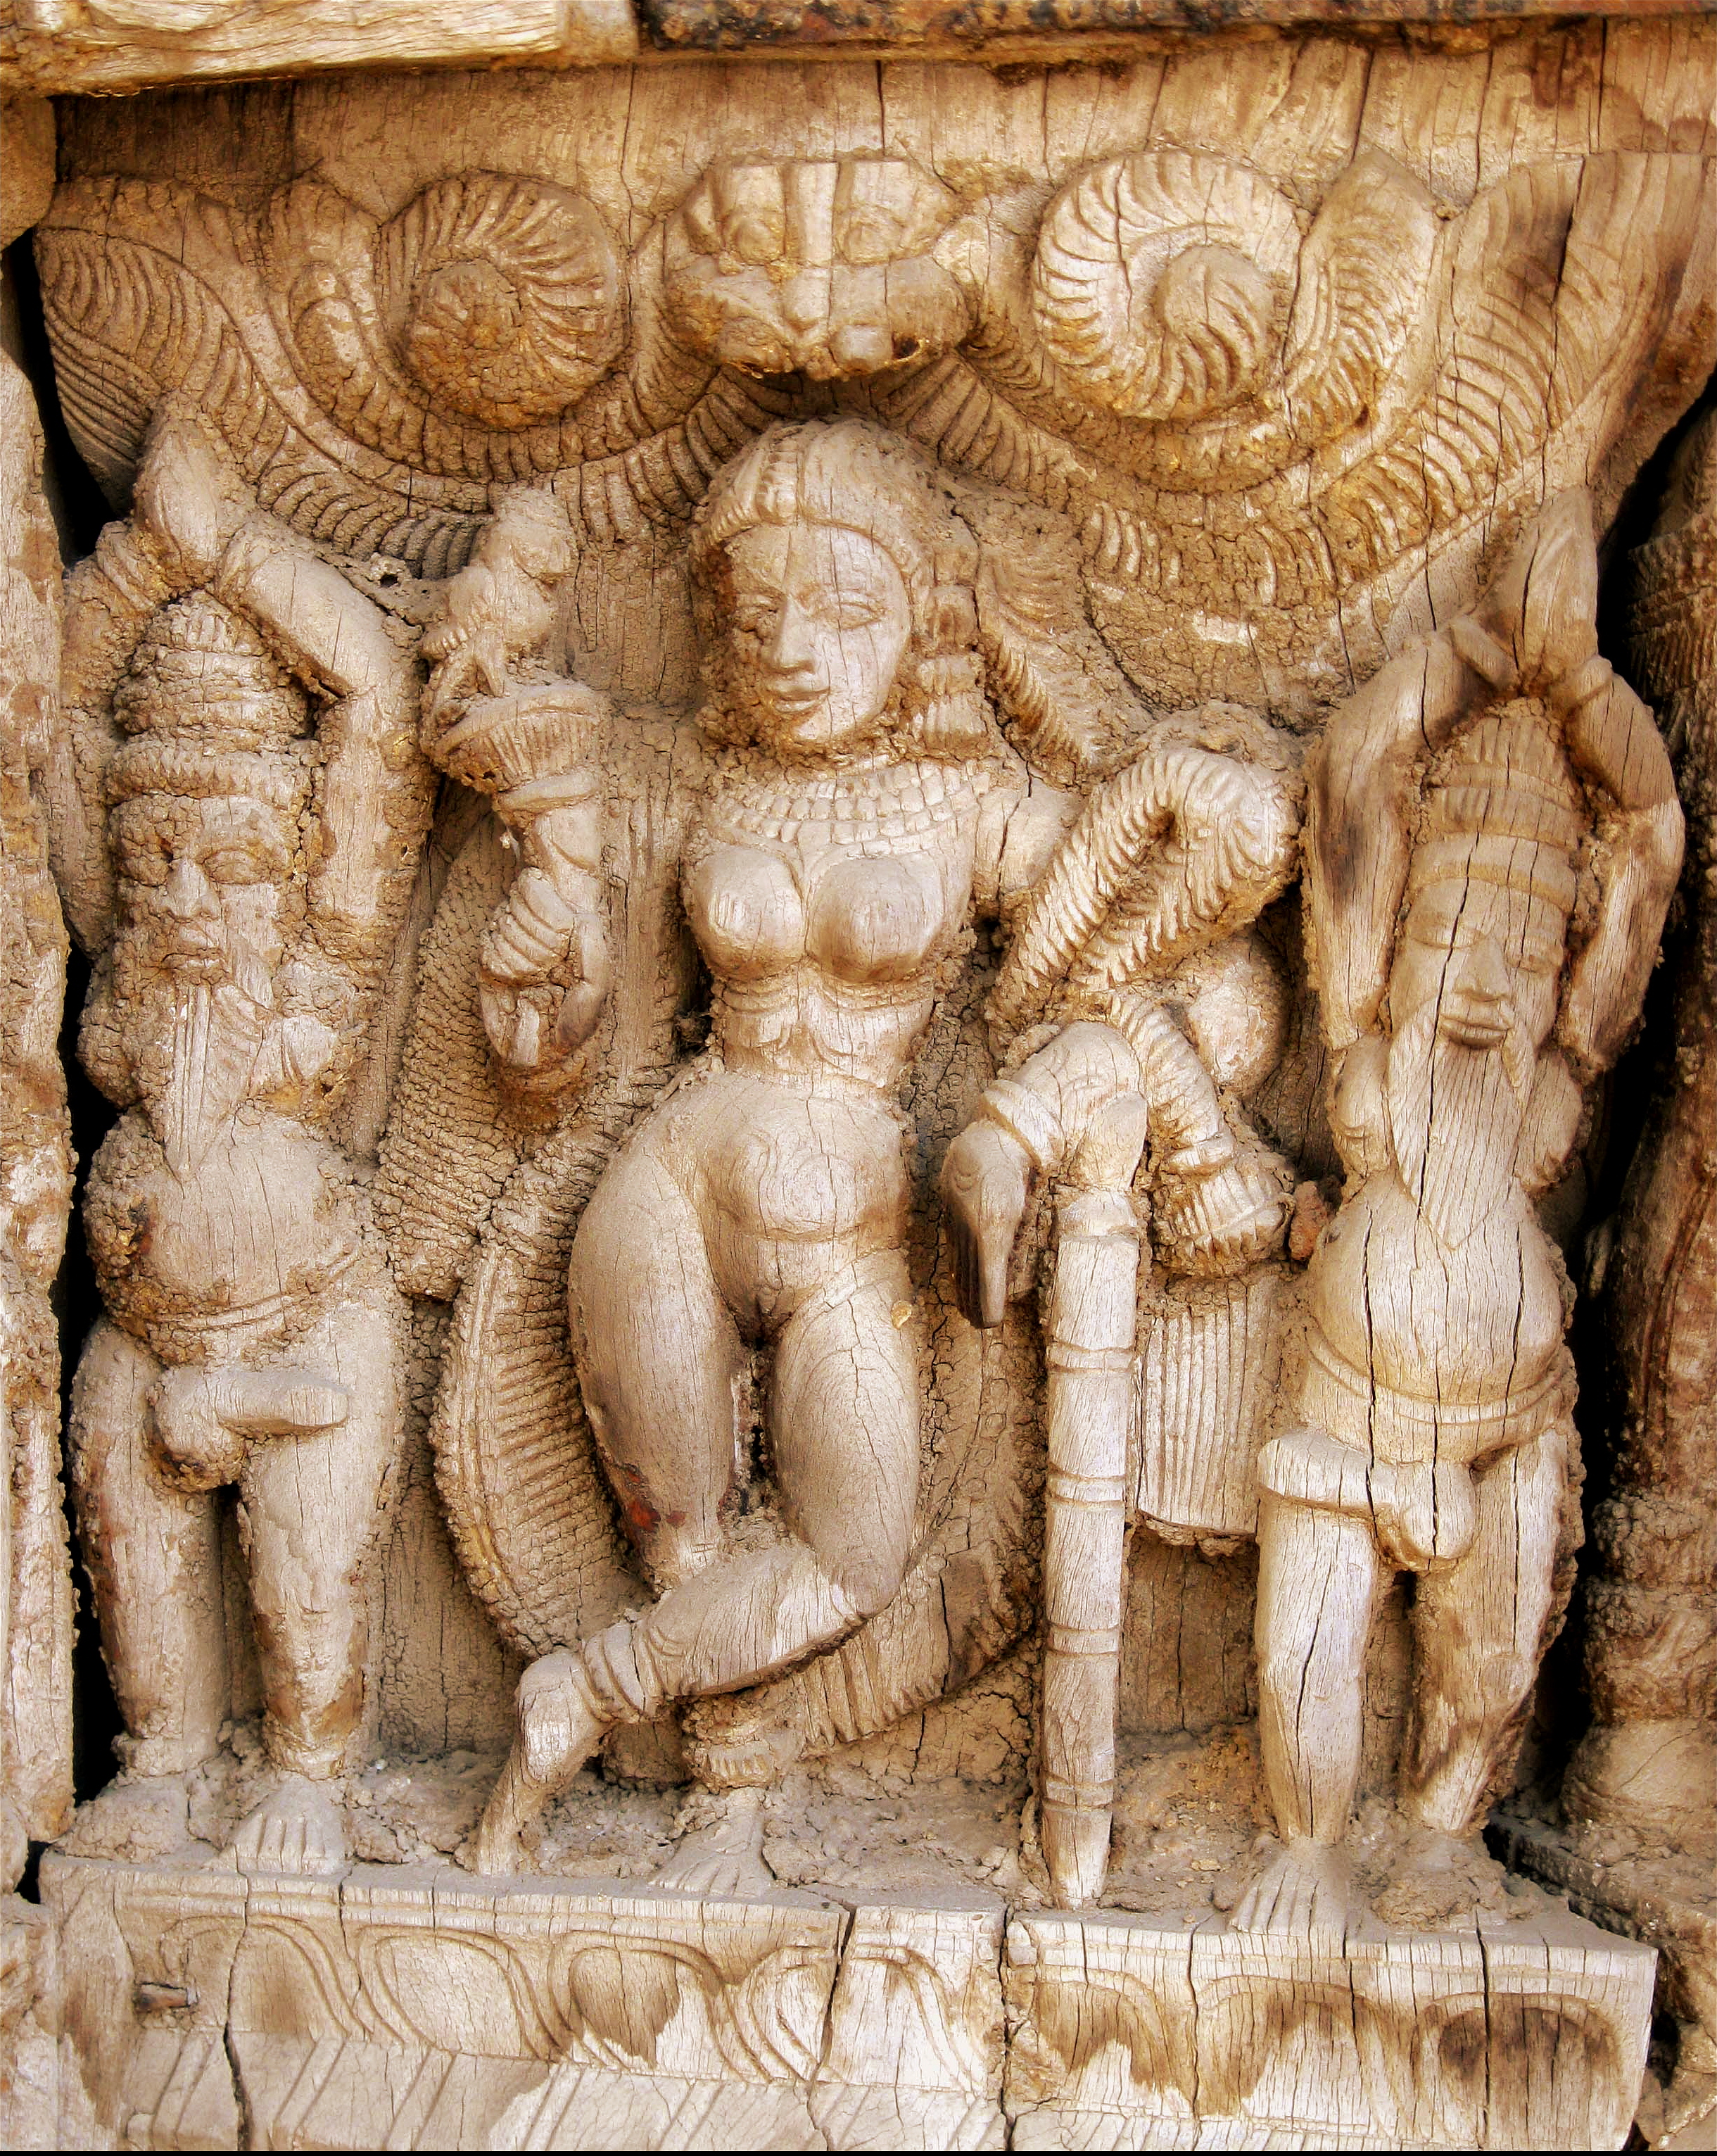 File:wood carving detail2 vishnu mohini.jpg wikipedia